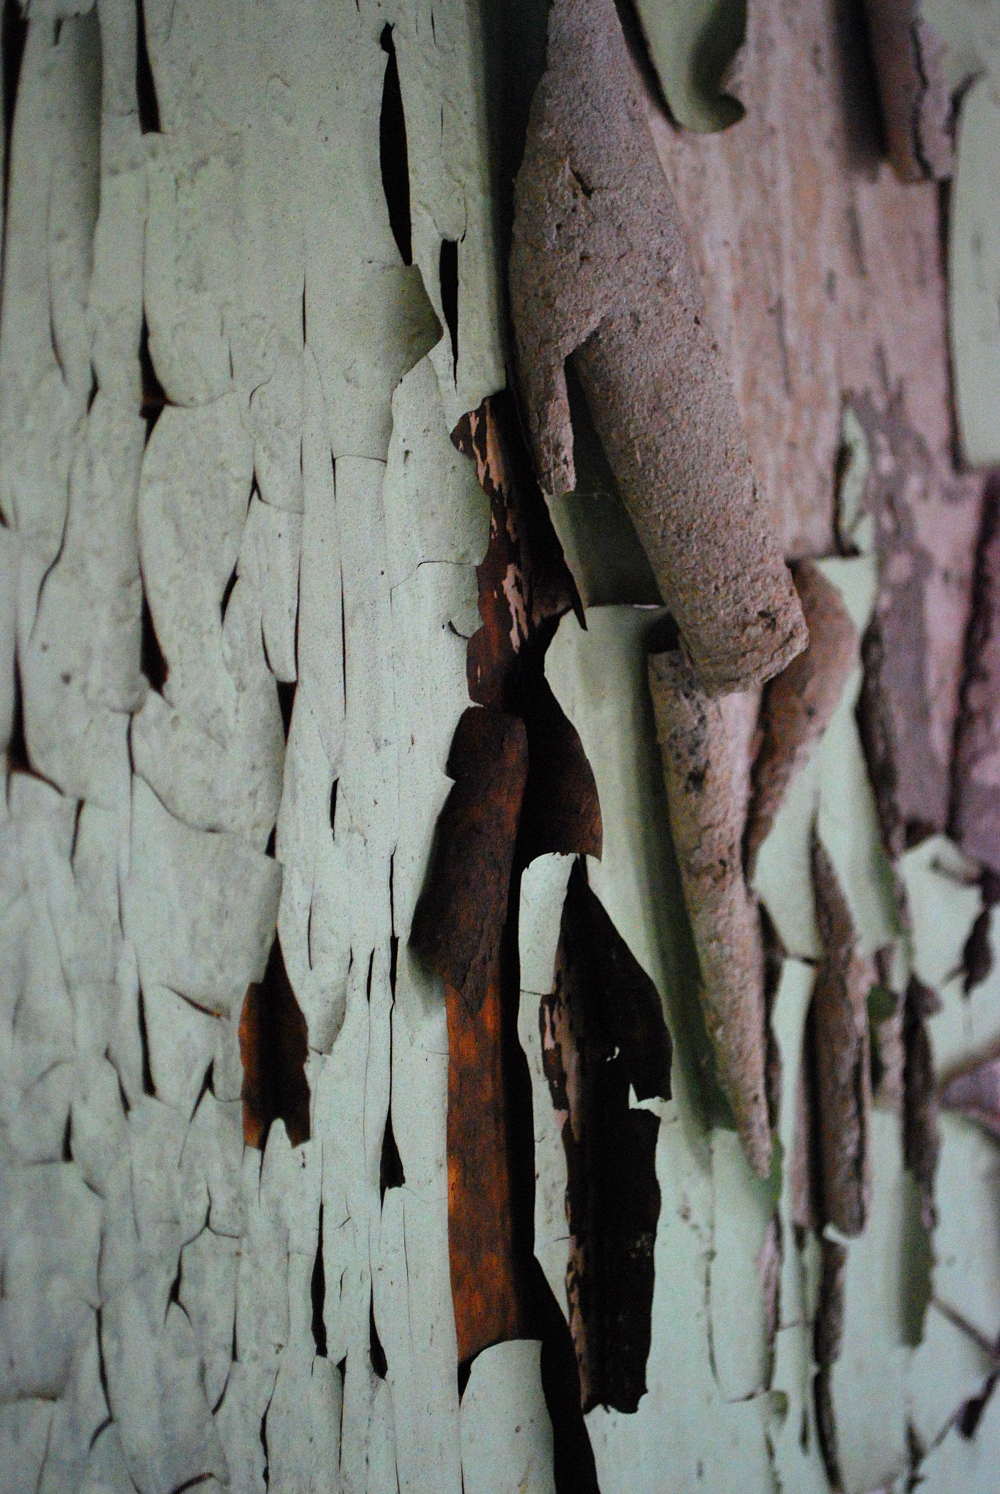 layers of peeling paint